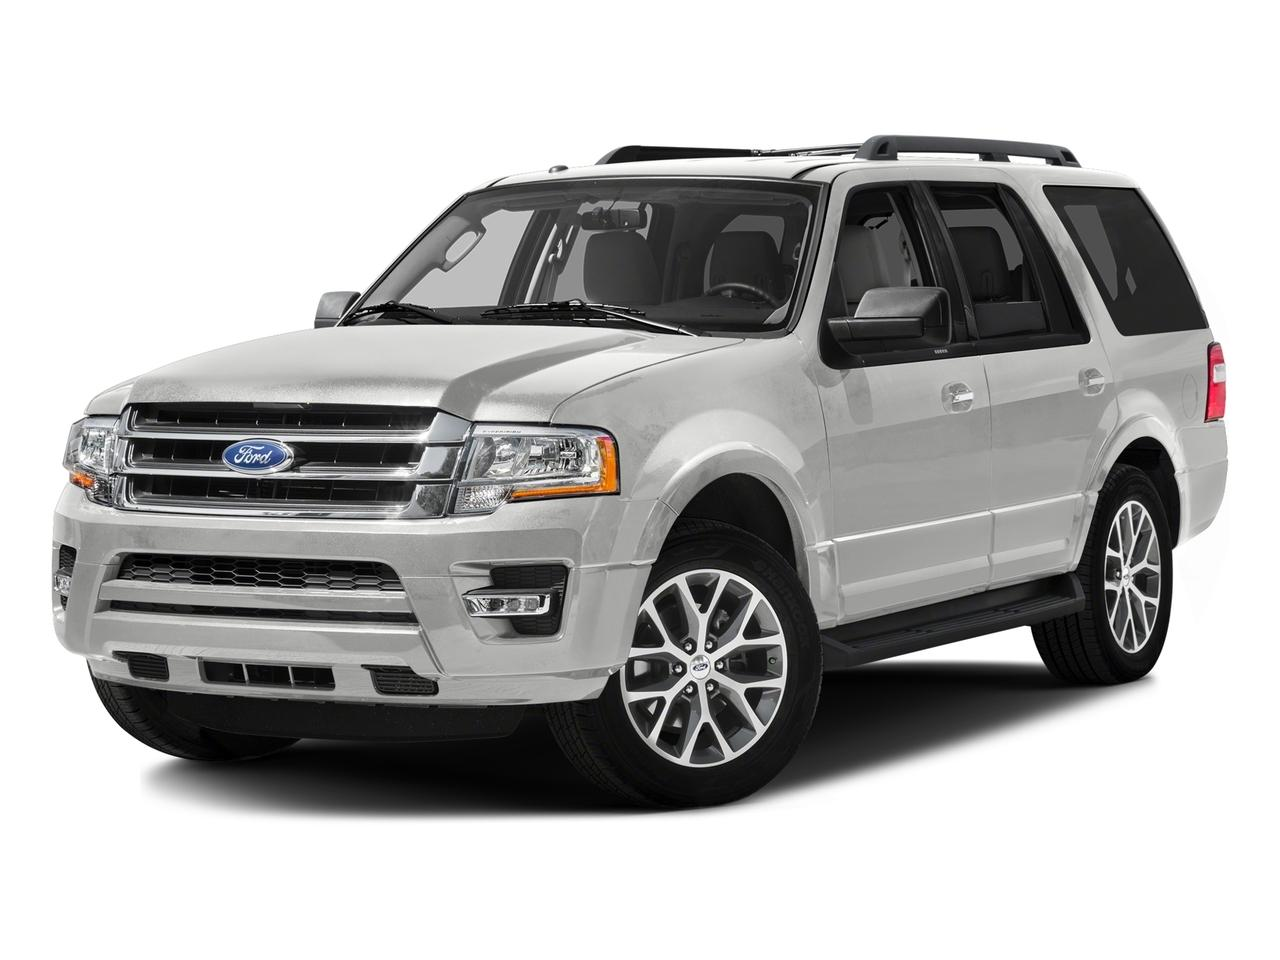 2016 Ford Expedition Vehicle Photo in Odessa, TX 79762